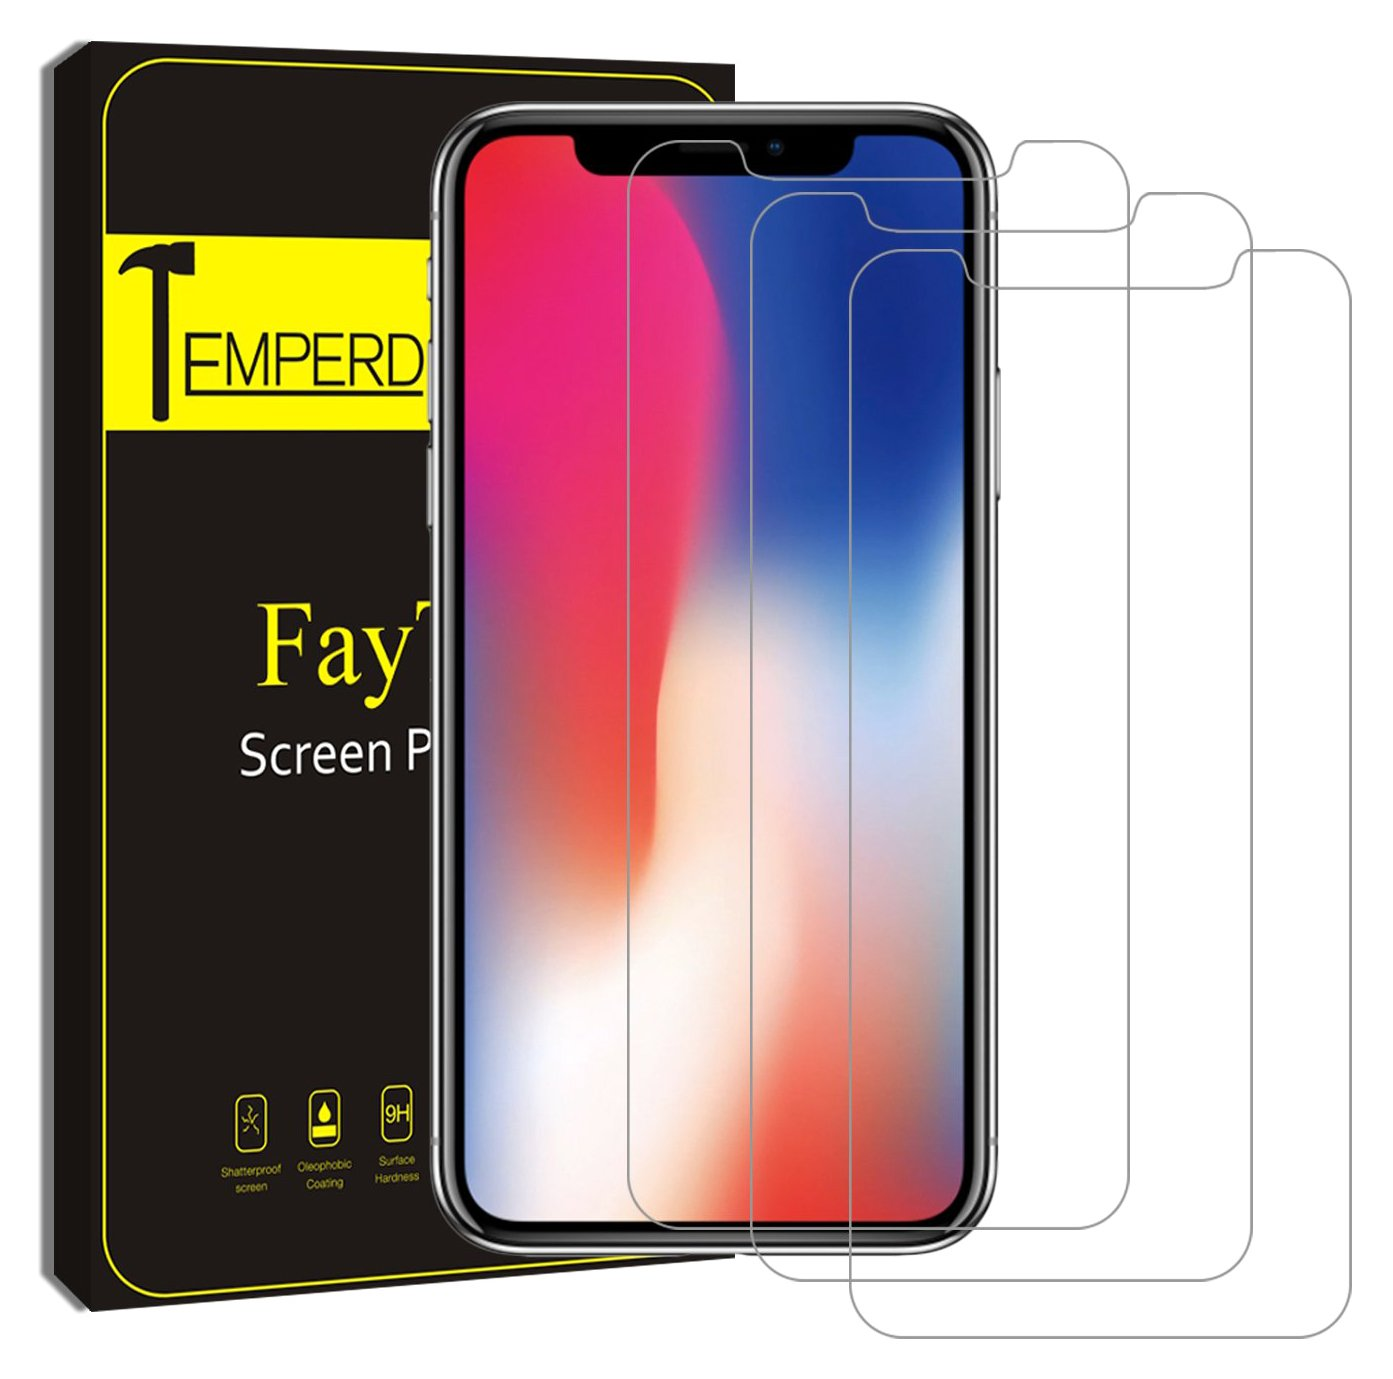 iPhone X Screen Protector, (Clear Transparent, 3 Packs) FayTun iPhone X Tempered Glass Screen Protectors, 0.3mm Screen Protector Glass for Apple iPhoneX 2017, 3D Touch Accurate